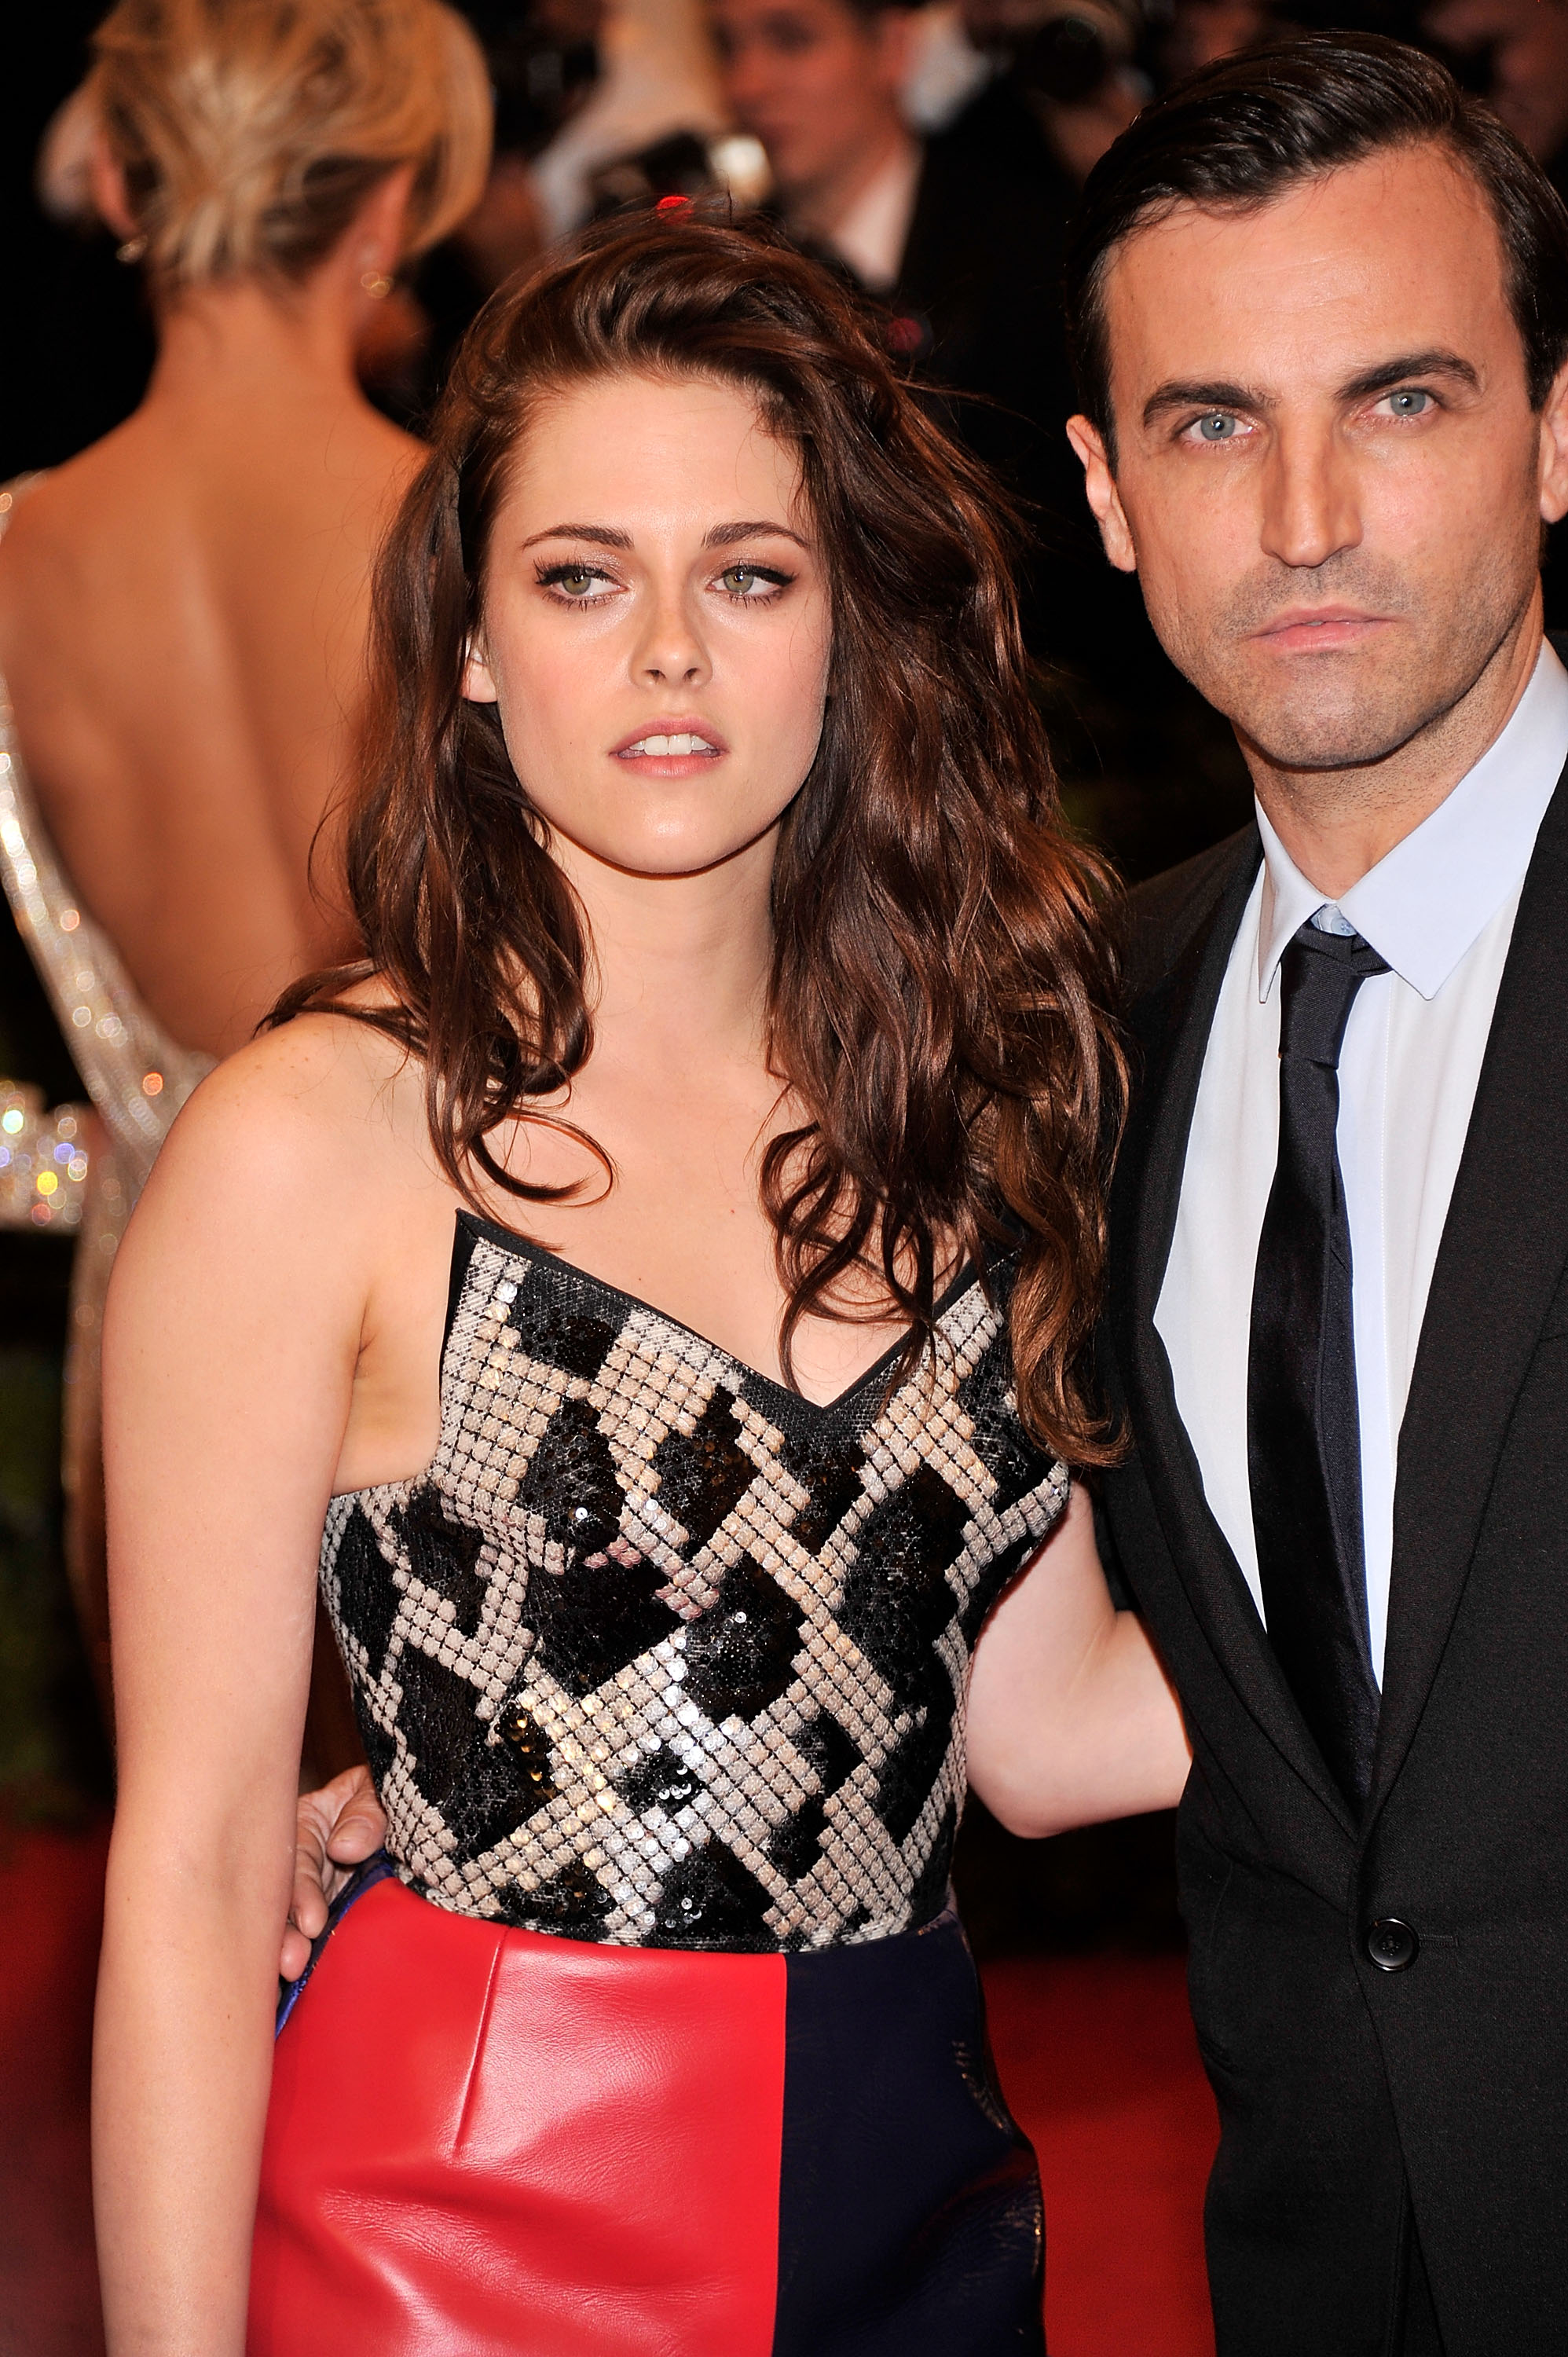 Kristen-MET-Ball-9